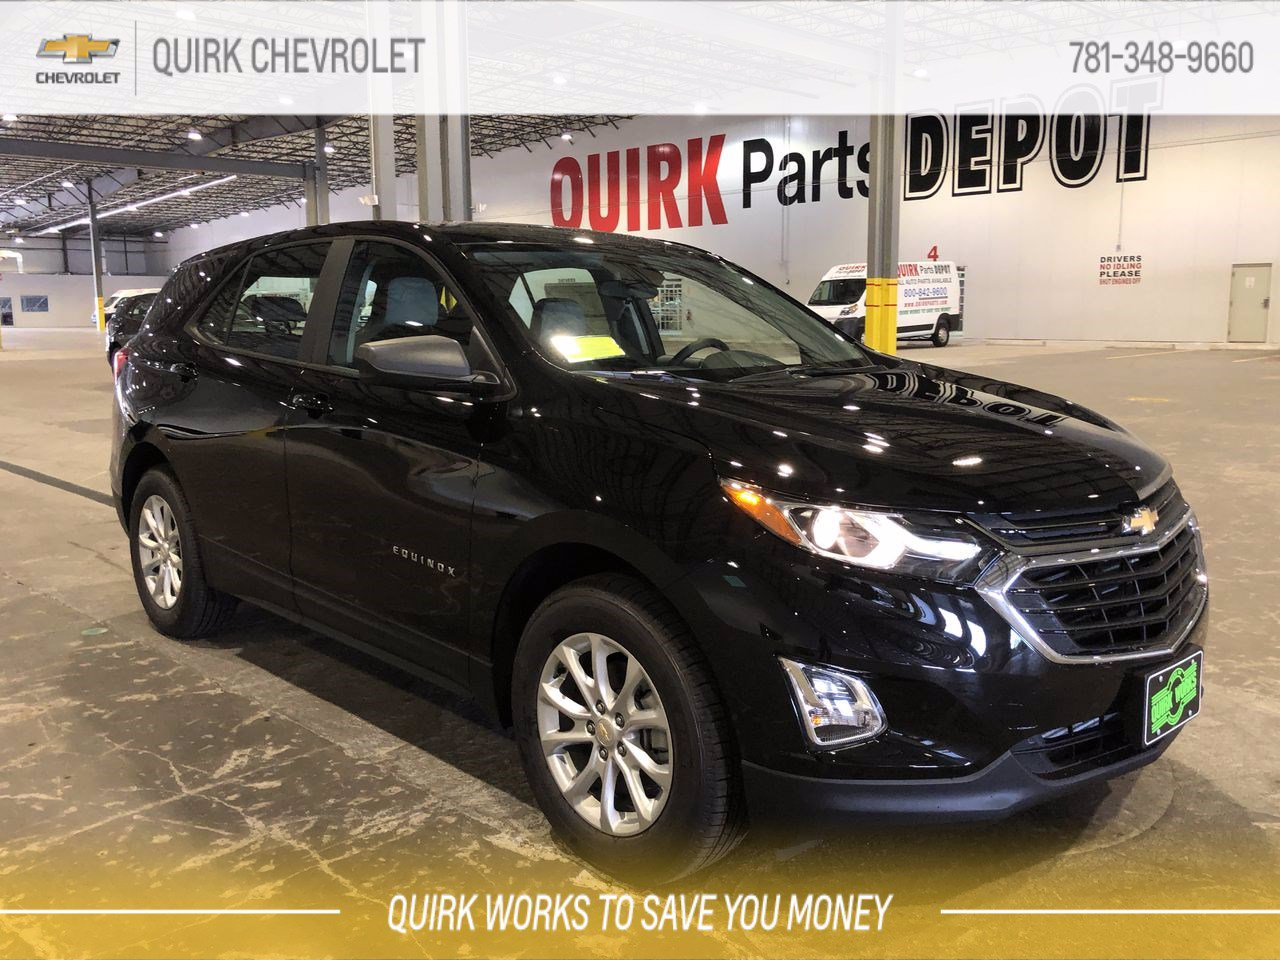 2020 Chevrolet Equinox Over 100 Available!